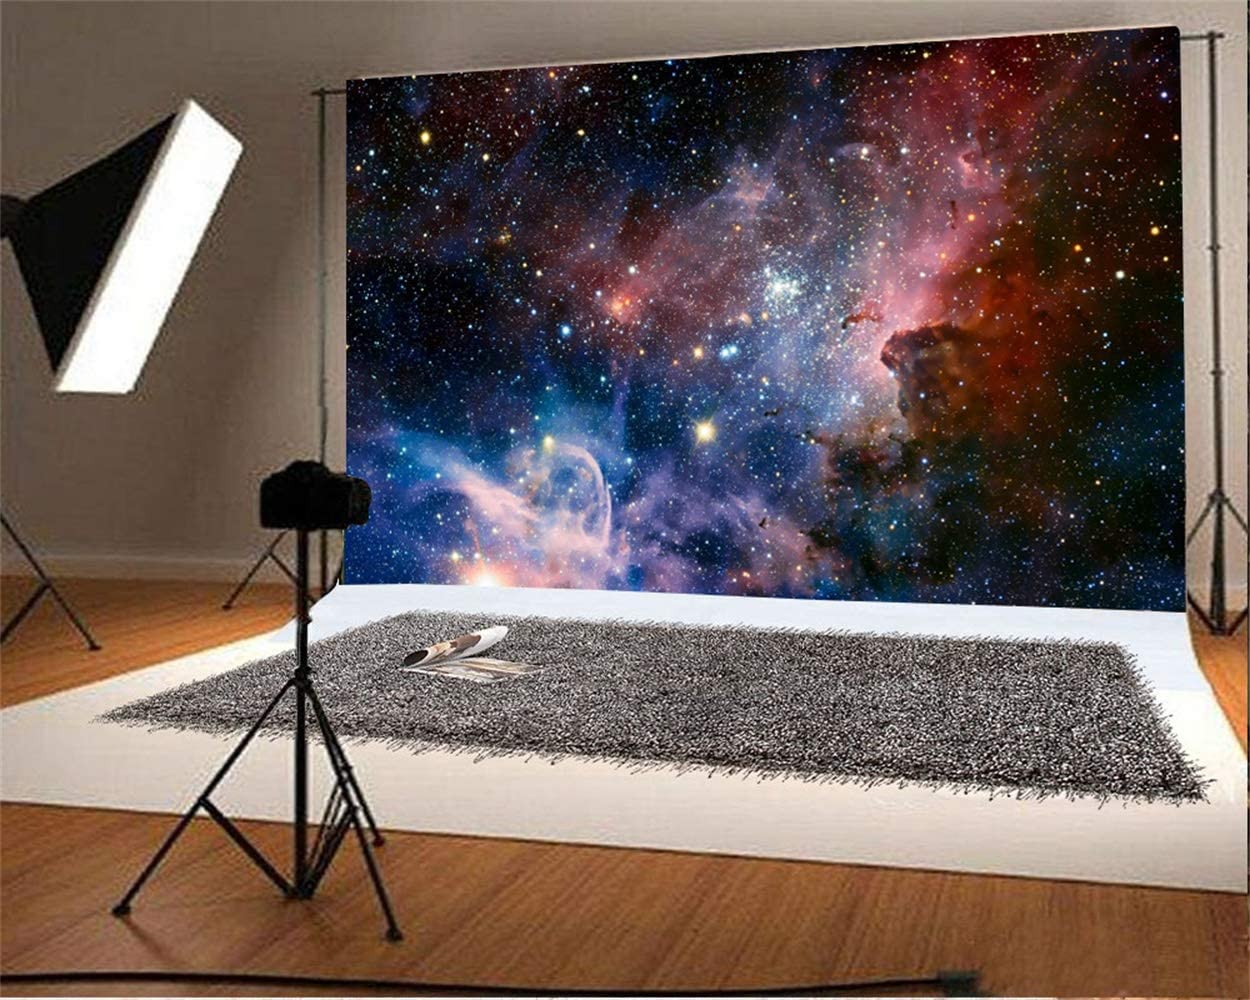 Abstract Nebula Backdrop 7x5ft Vinyl Dreamy Universe Starry Nightsky Mysterious Outer Space Neon Background Child Kids Adult Astronaut Portrait Shoot Birthday Banner Wallpaper Studio